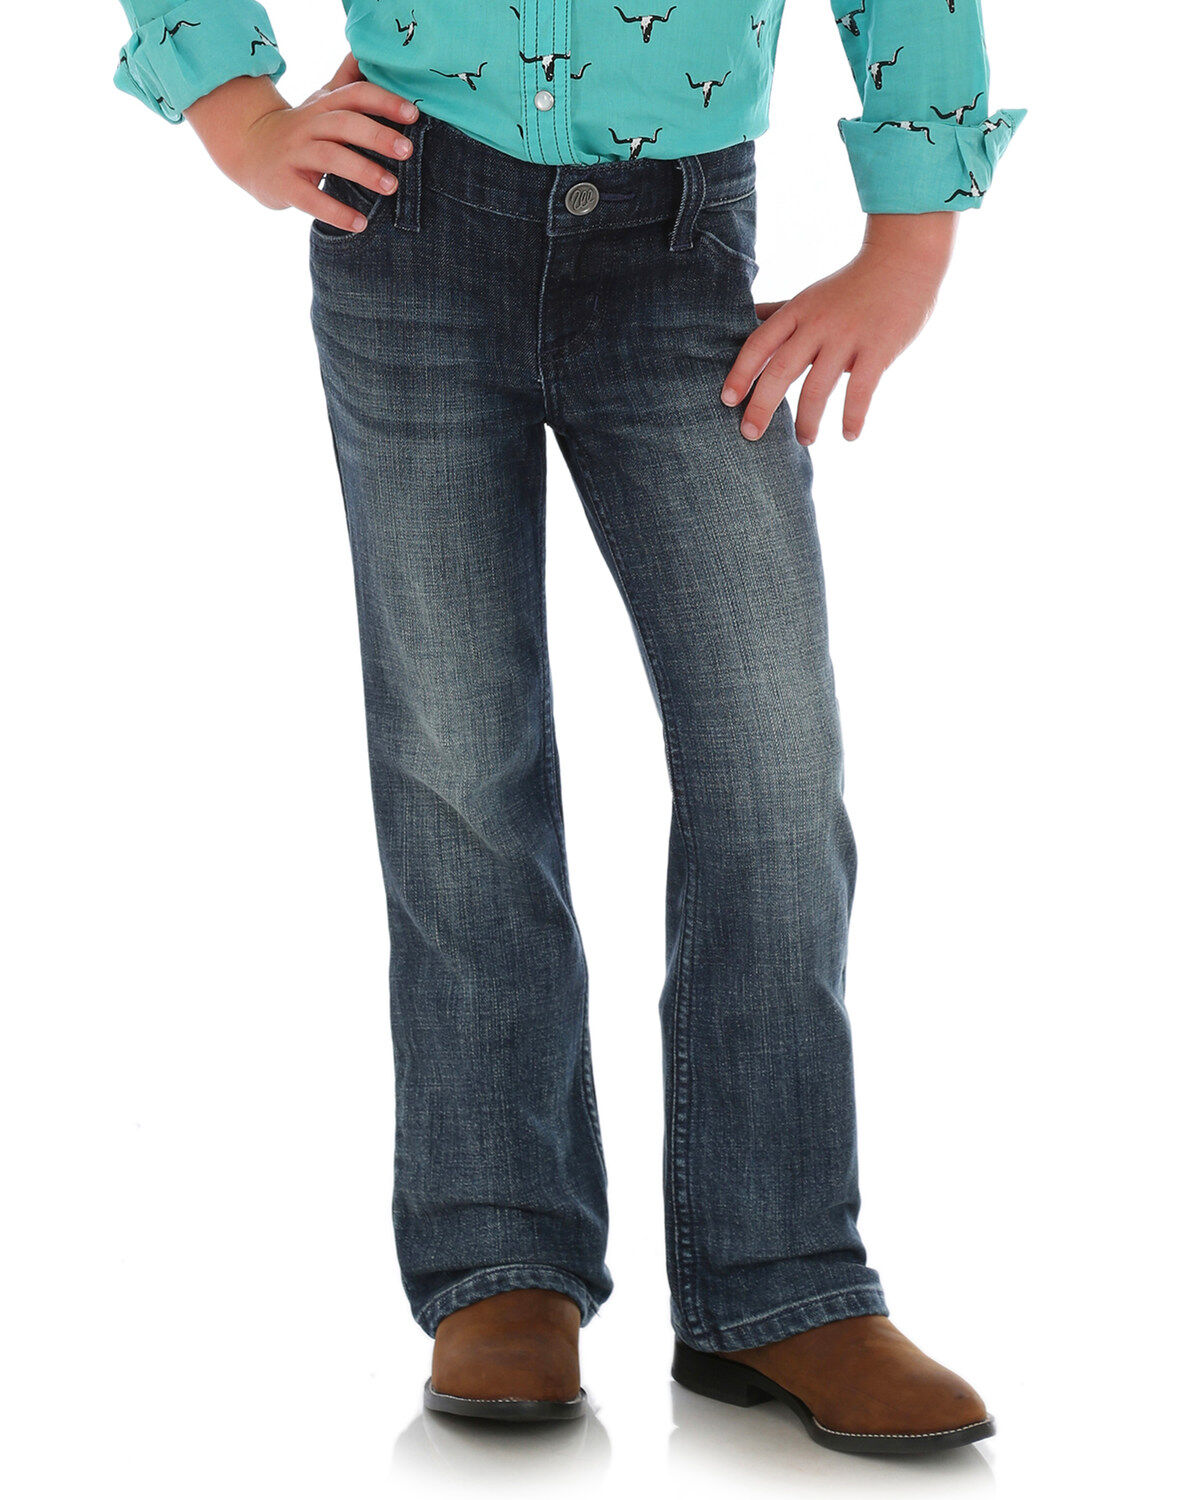 Bootcut Jeans for Teenage Girls